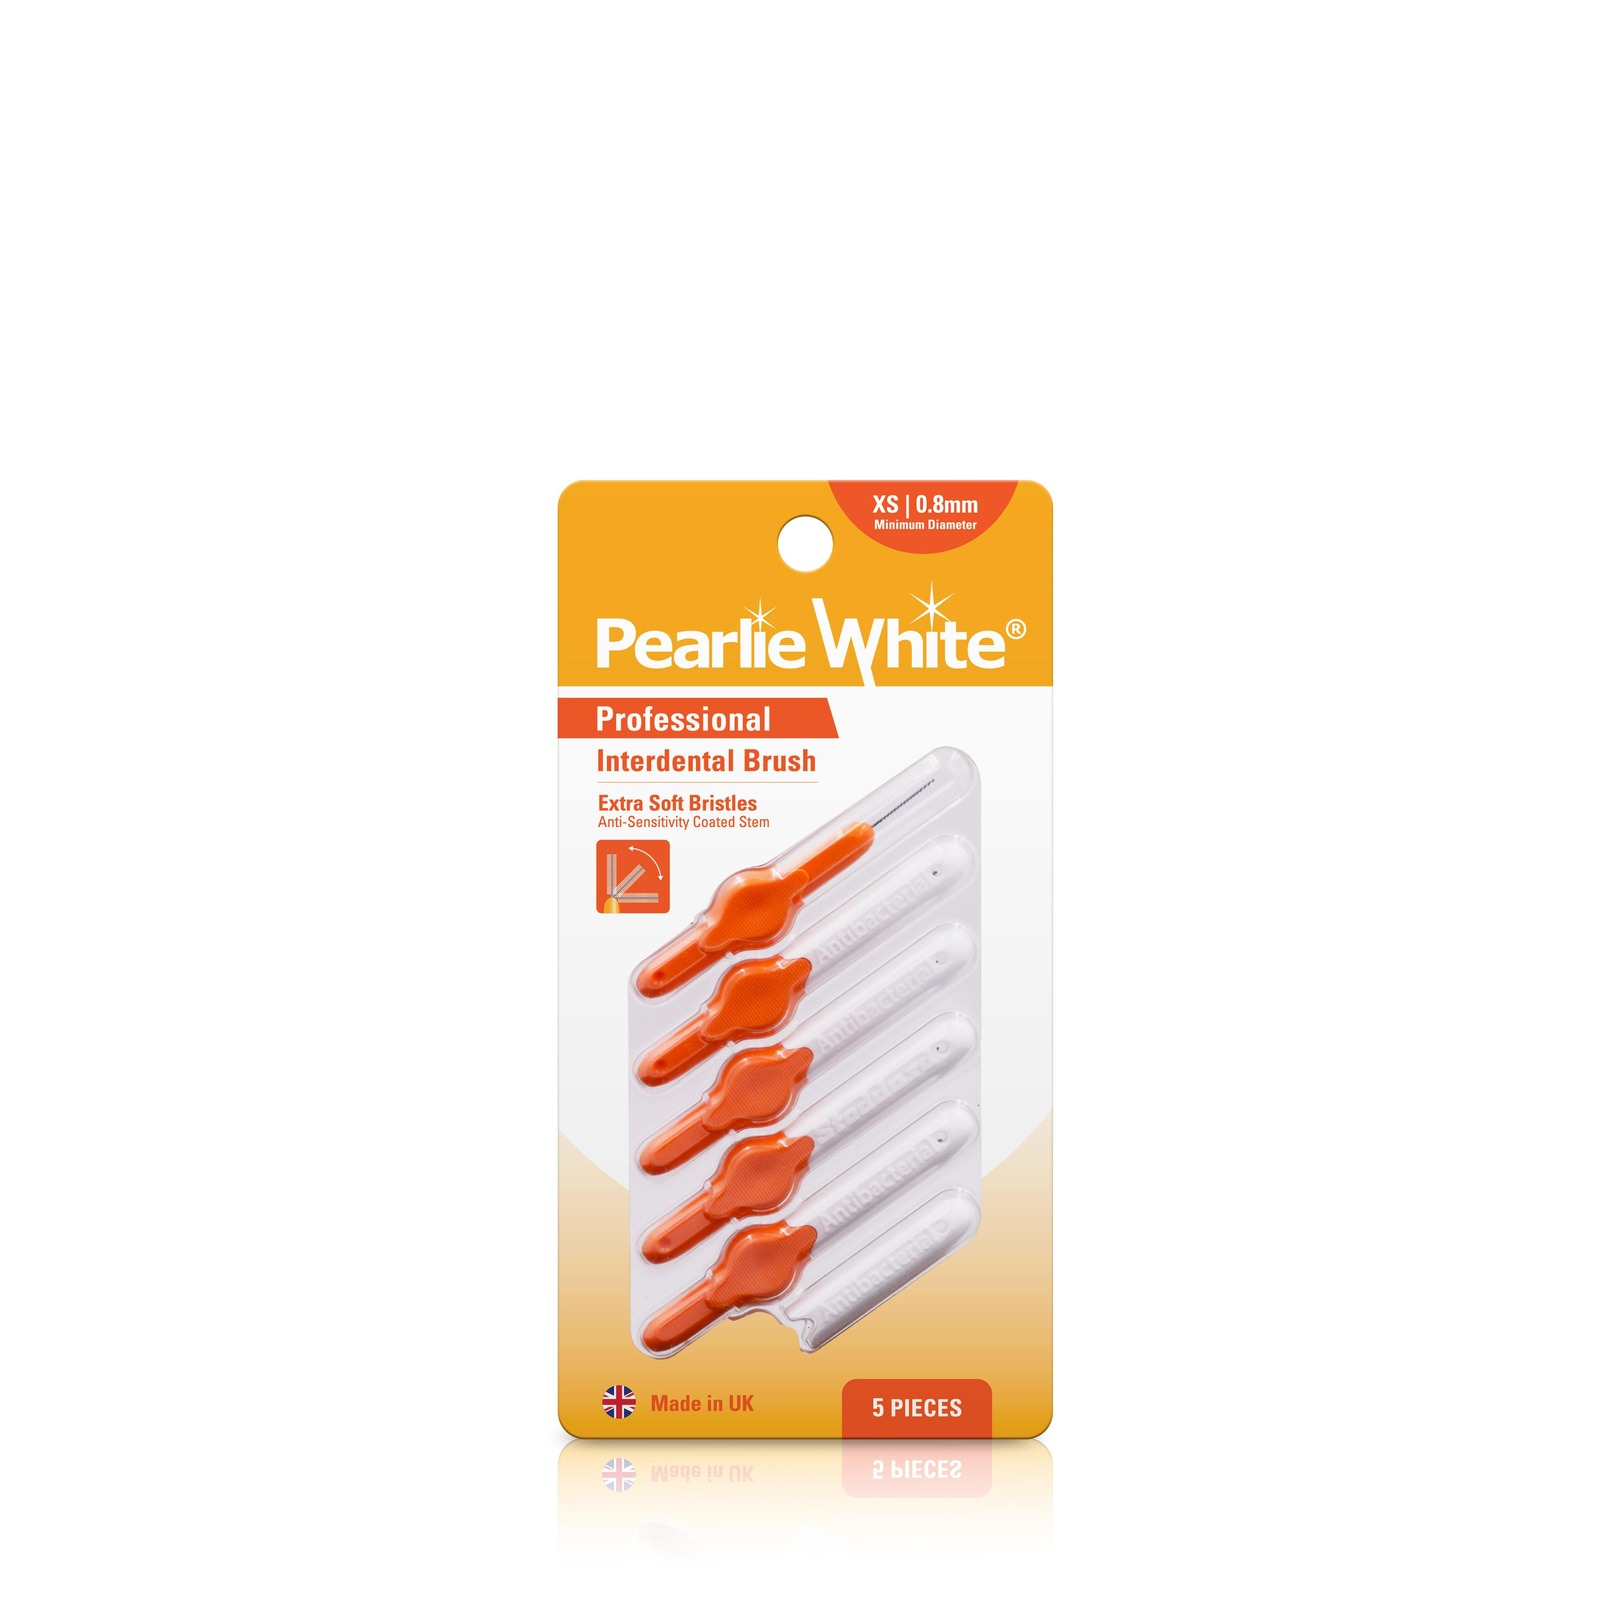 Pearlie White Professional Interdental Brush XS 0.8mm